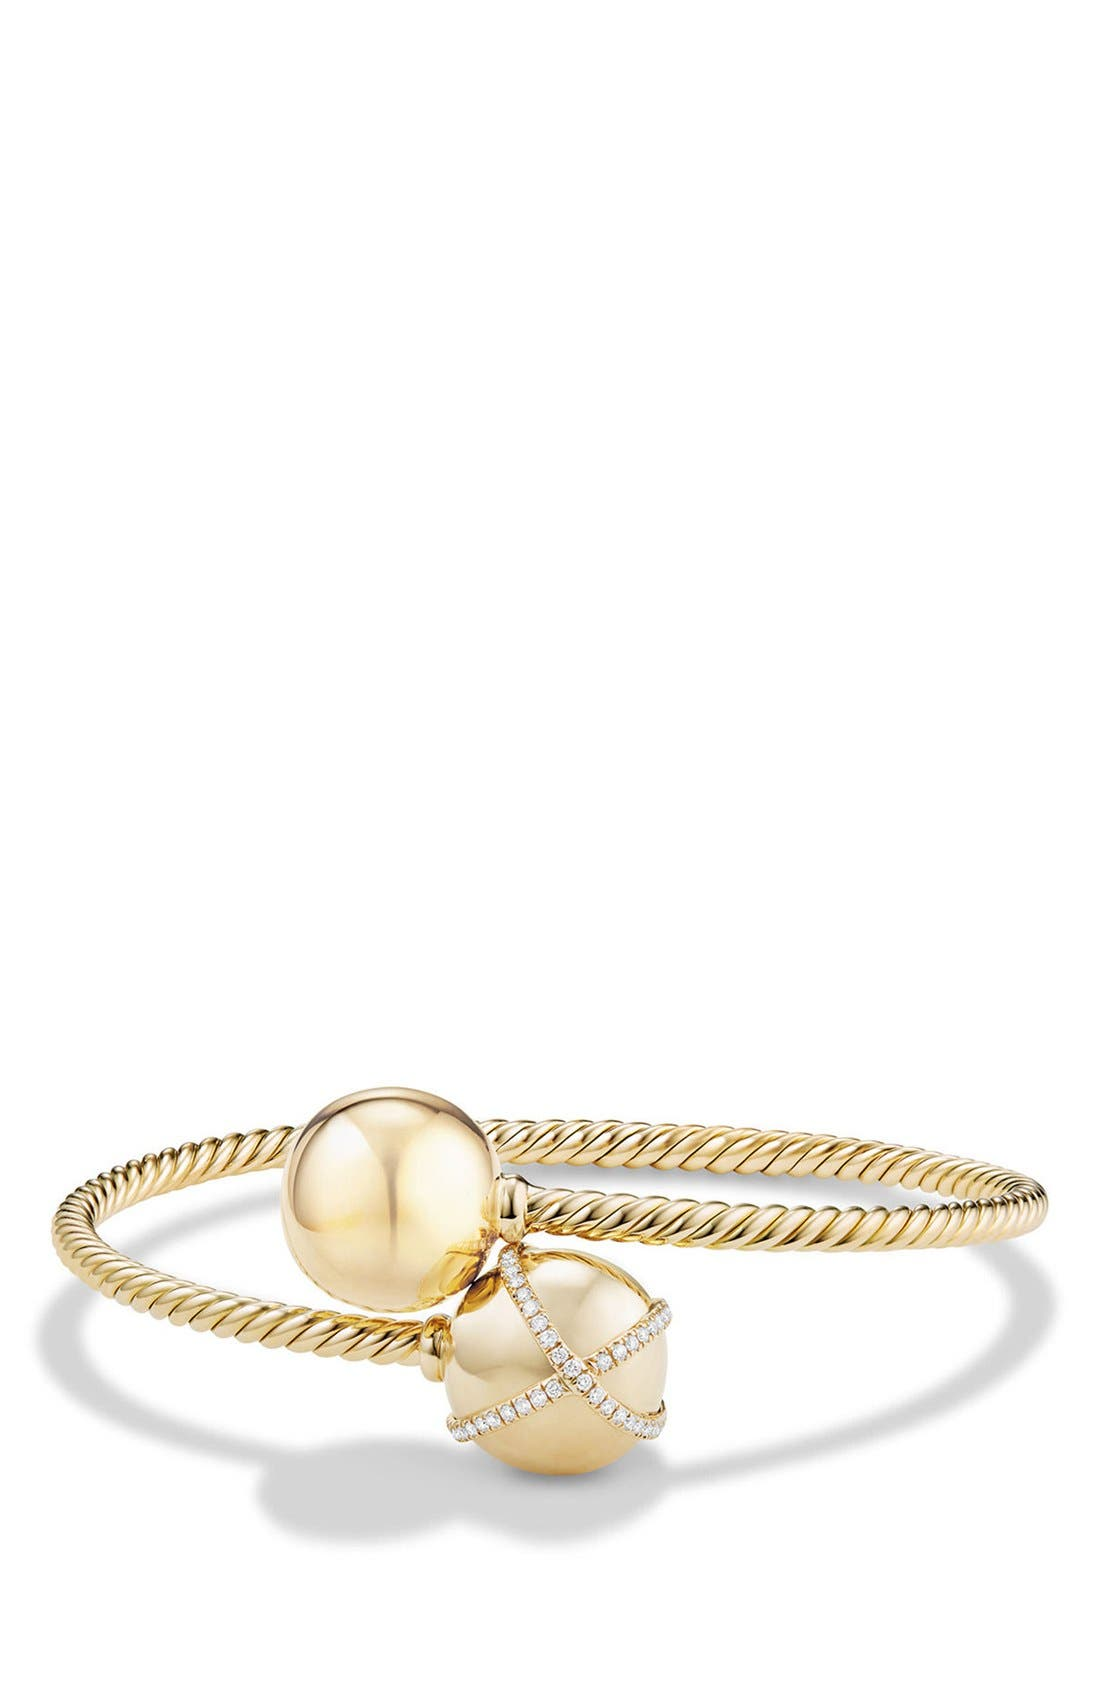 'Solari Bypass' Bracelet with Diamonds in 18K Gold,                             Main thumbnail 1, color,                             YELLOW GOLD